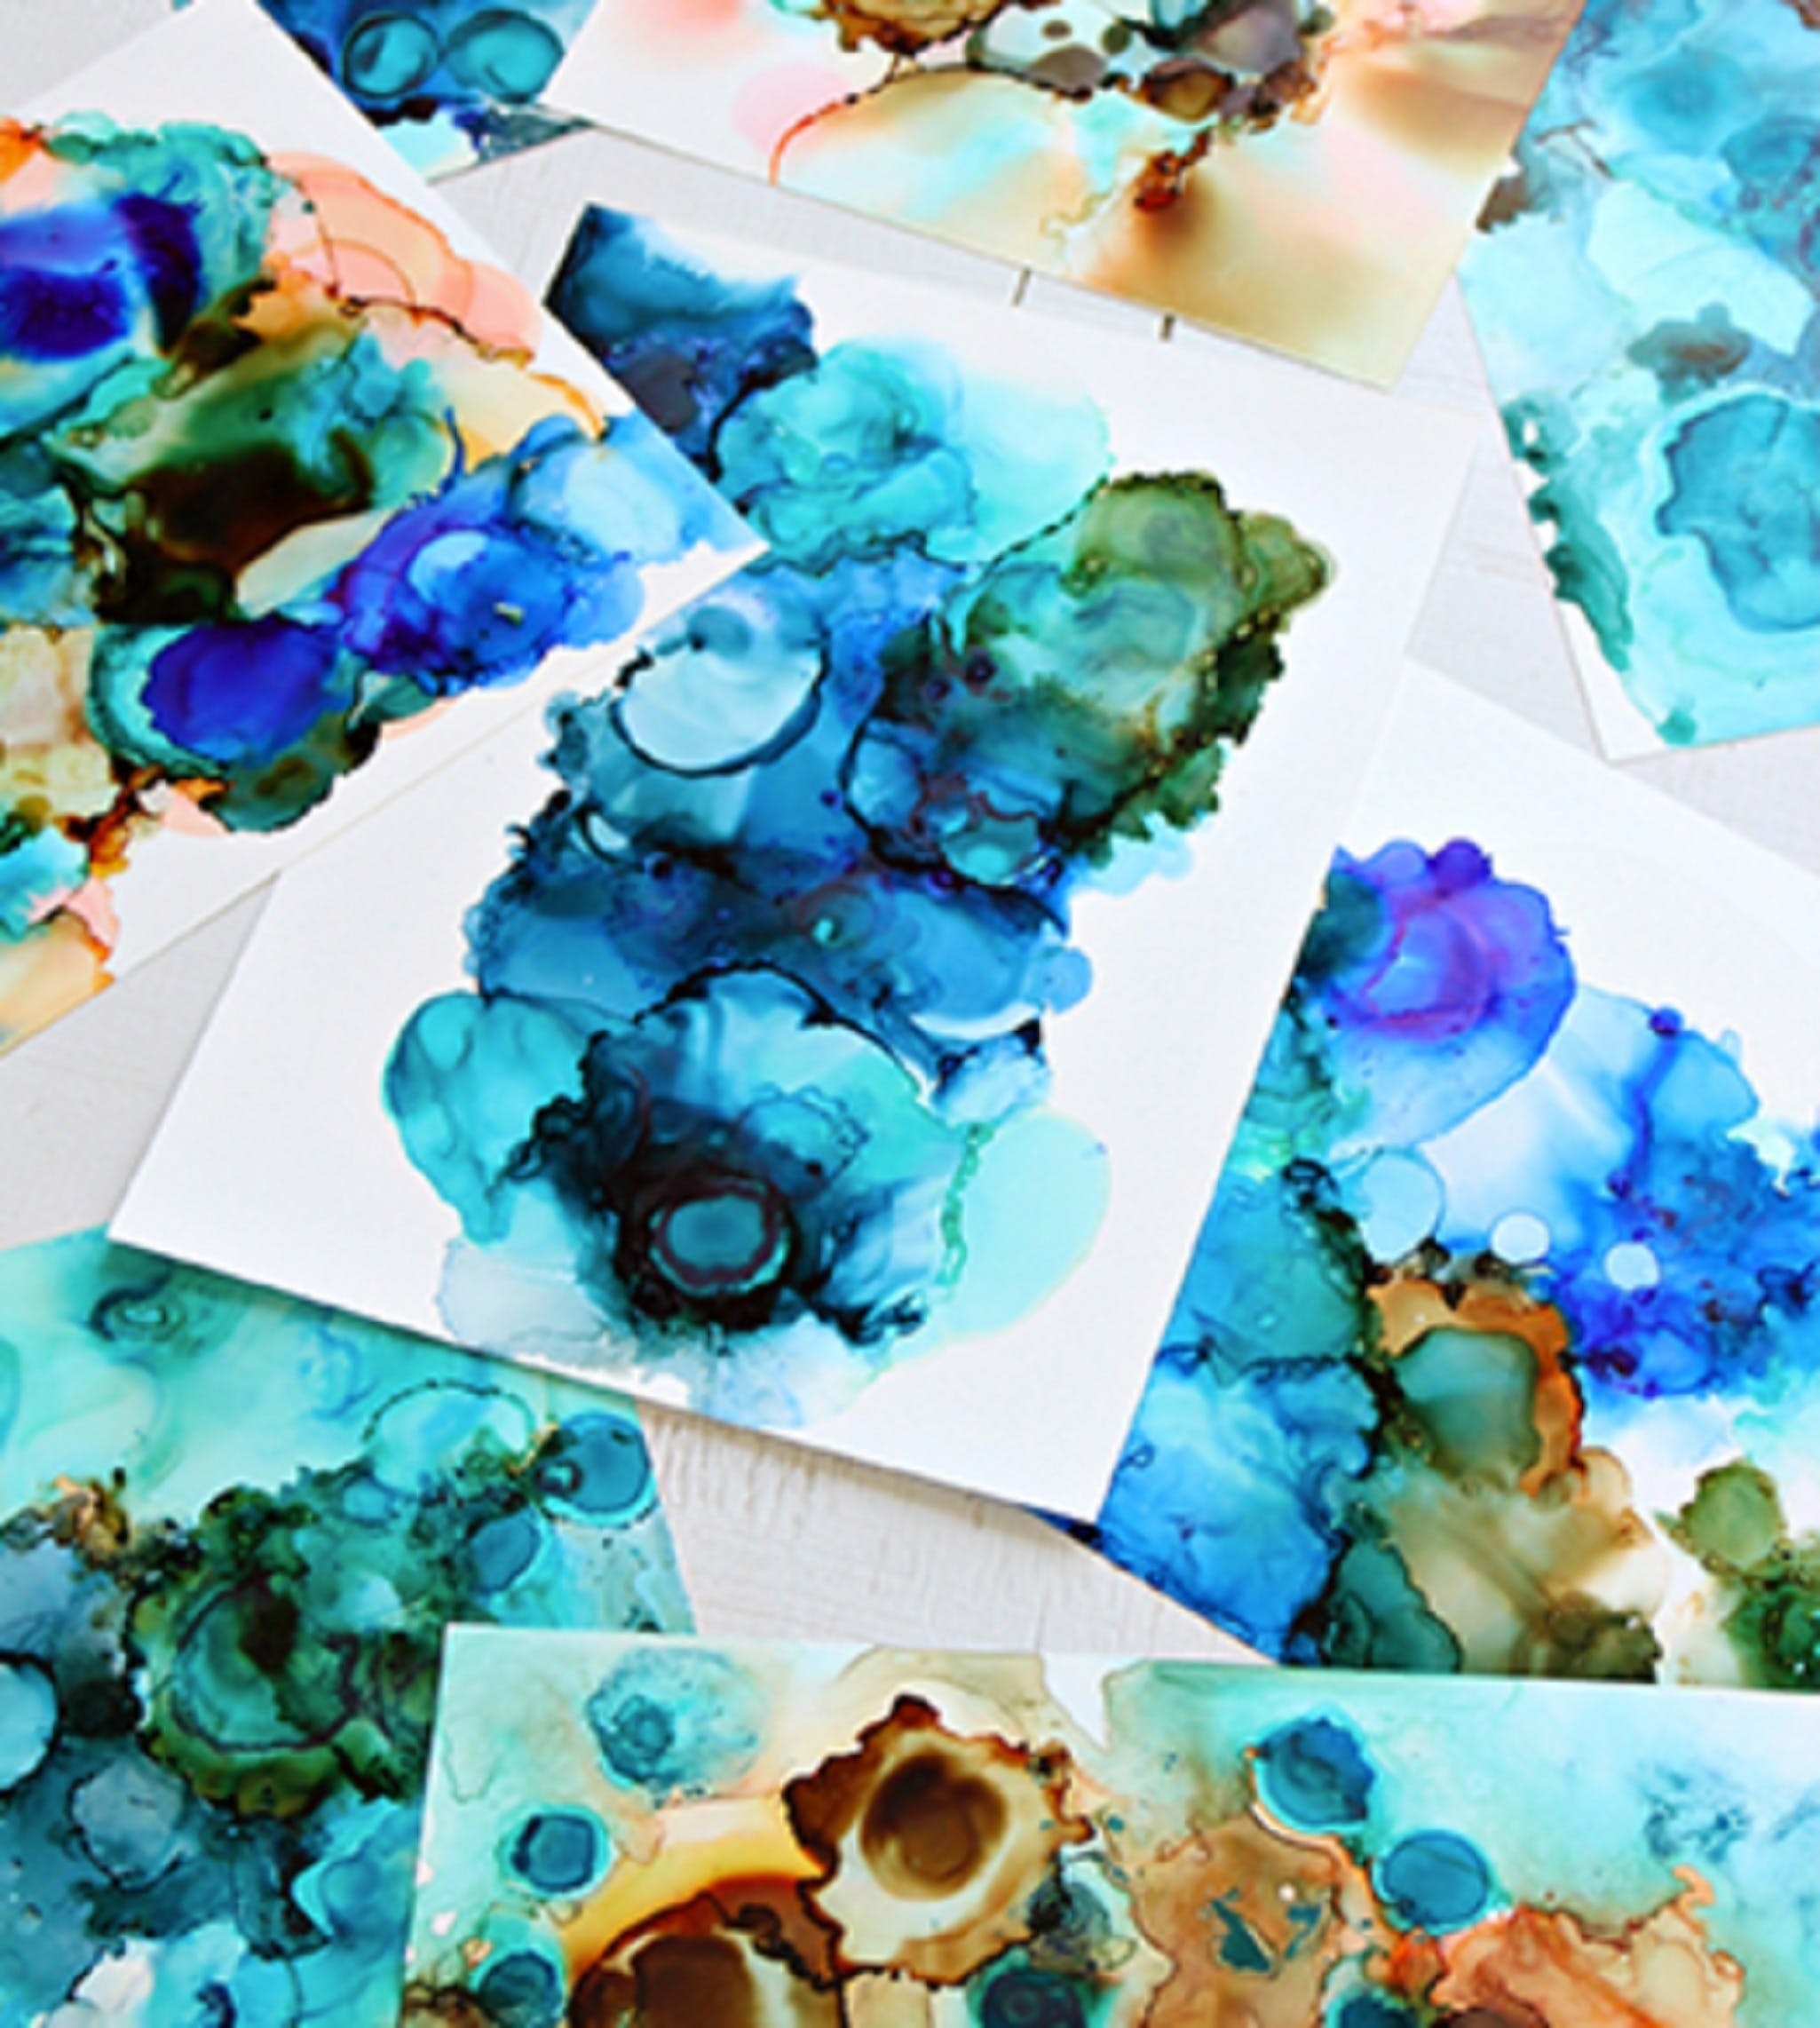 Alcohol Ink Art Class - Port Augusta Accommodation